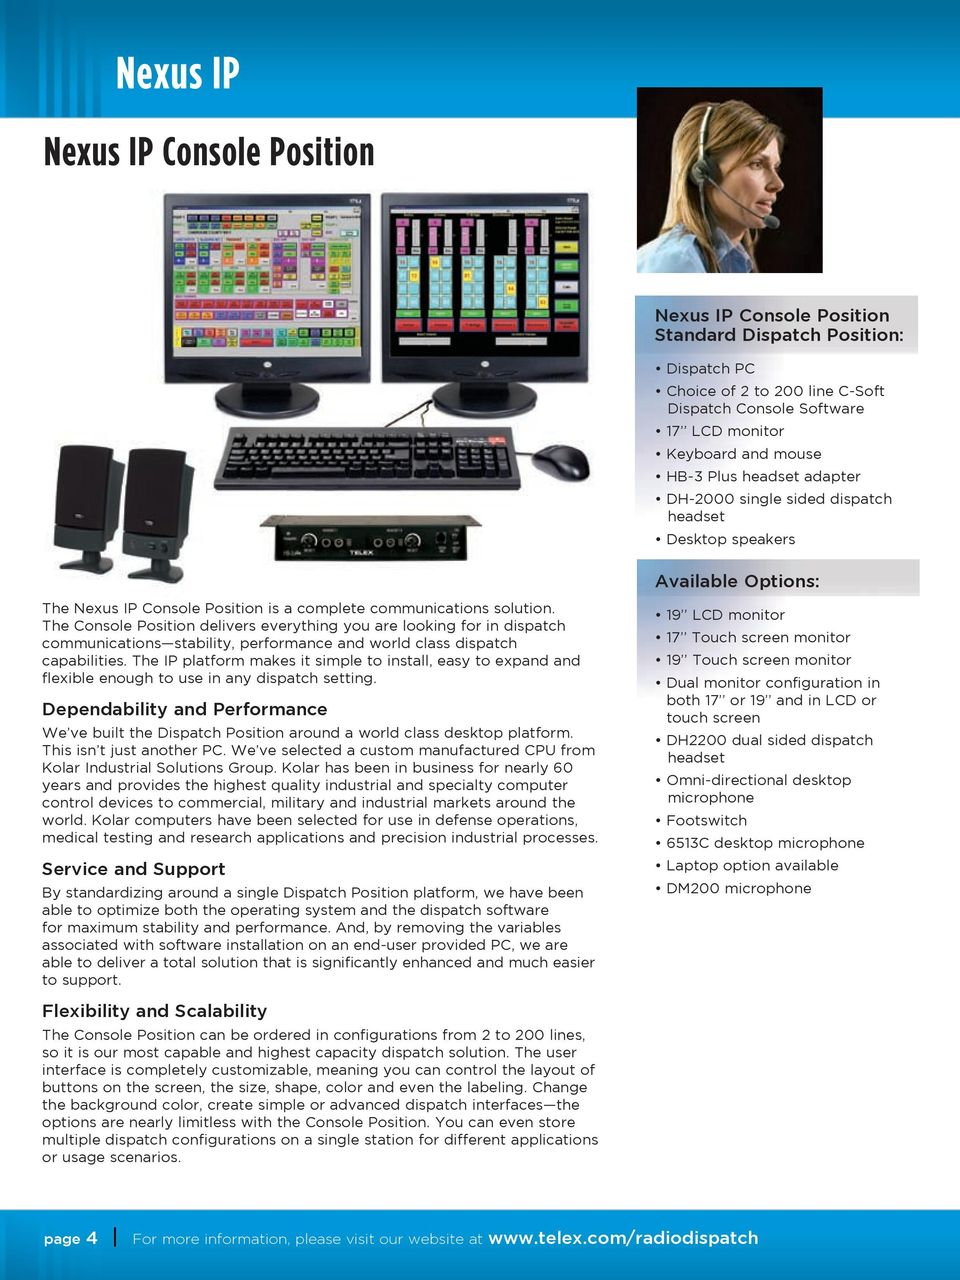 Telex Radio Dispatch Products  Communications and dispatch